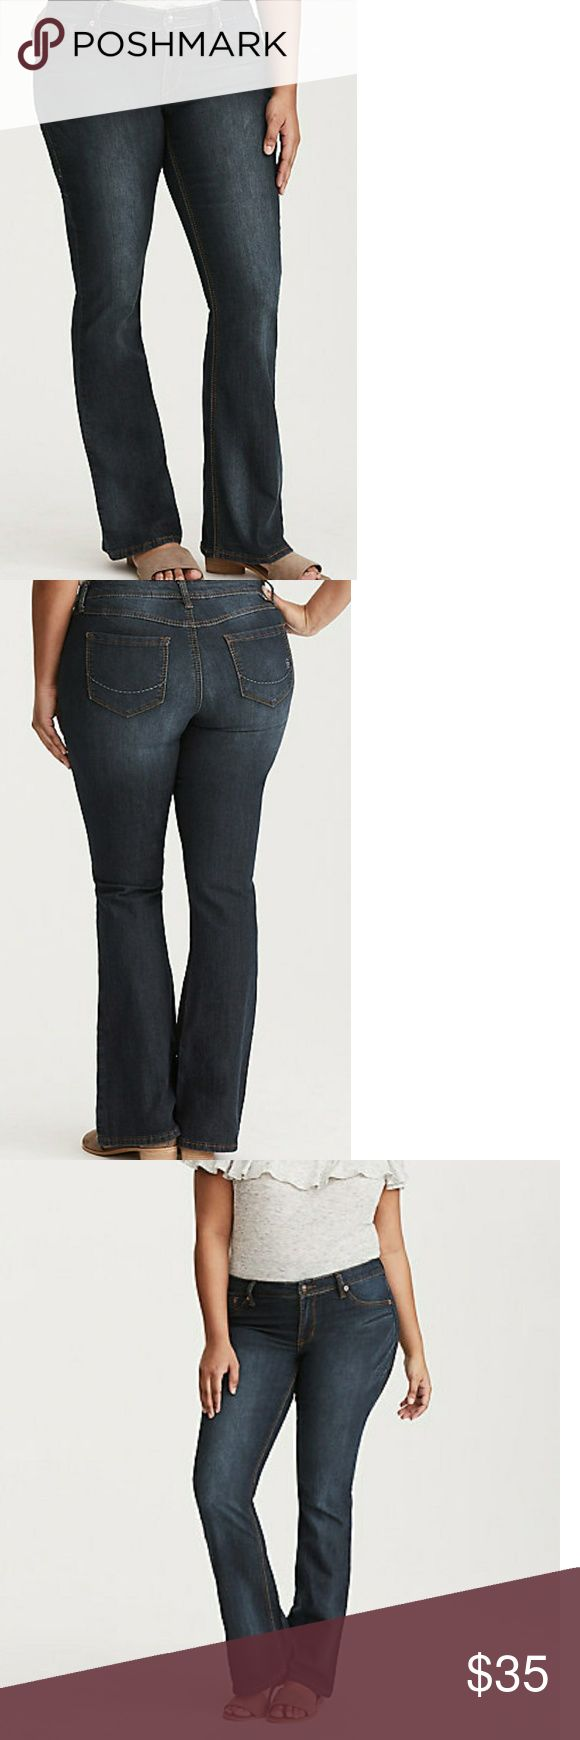 Torrid Slim Boot Jeans - Medium Wash These were bought from Torrid (still for sale online for $44), but the brand of the jeans are Source of Wisdom. Gently used, excellent condition. These are size 14 Extra Tall. See photo for measurements and length. torrid Jeans Boot Cut